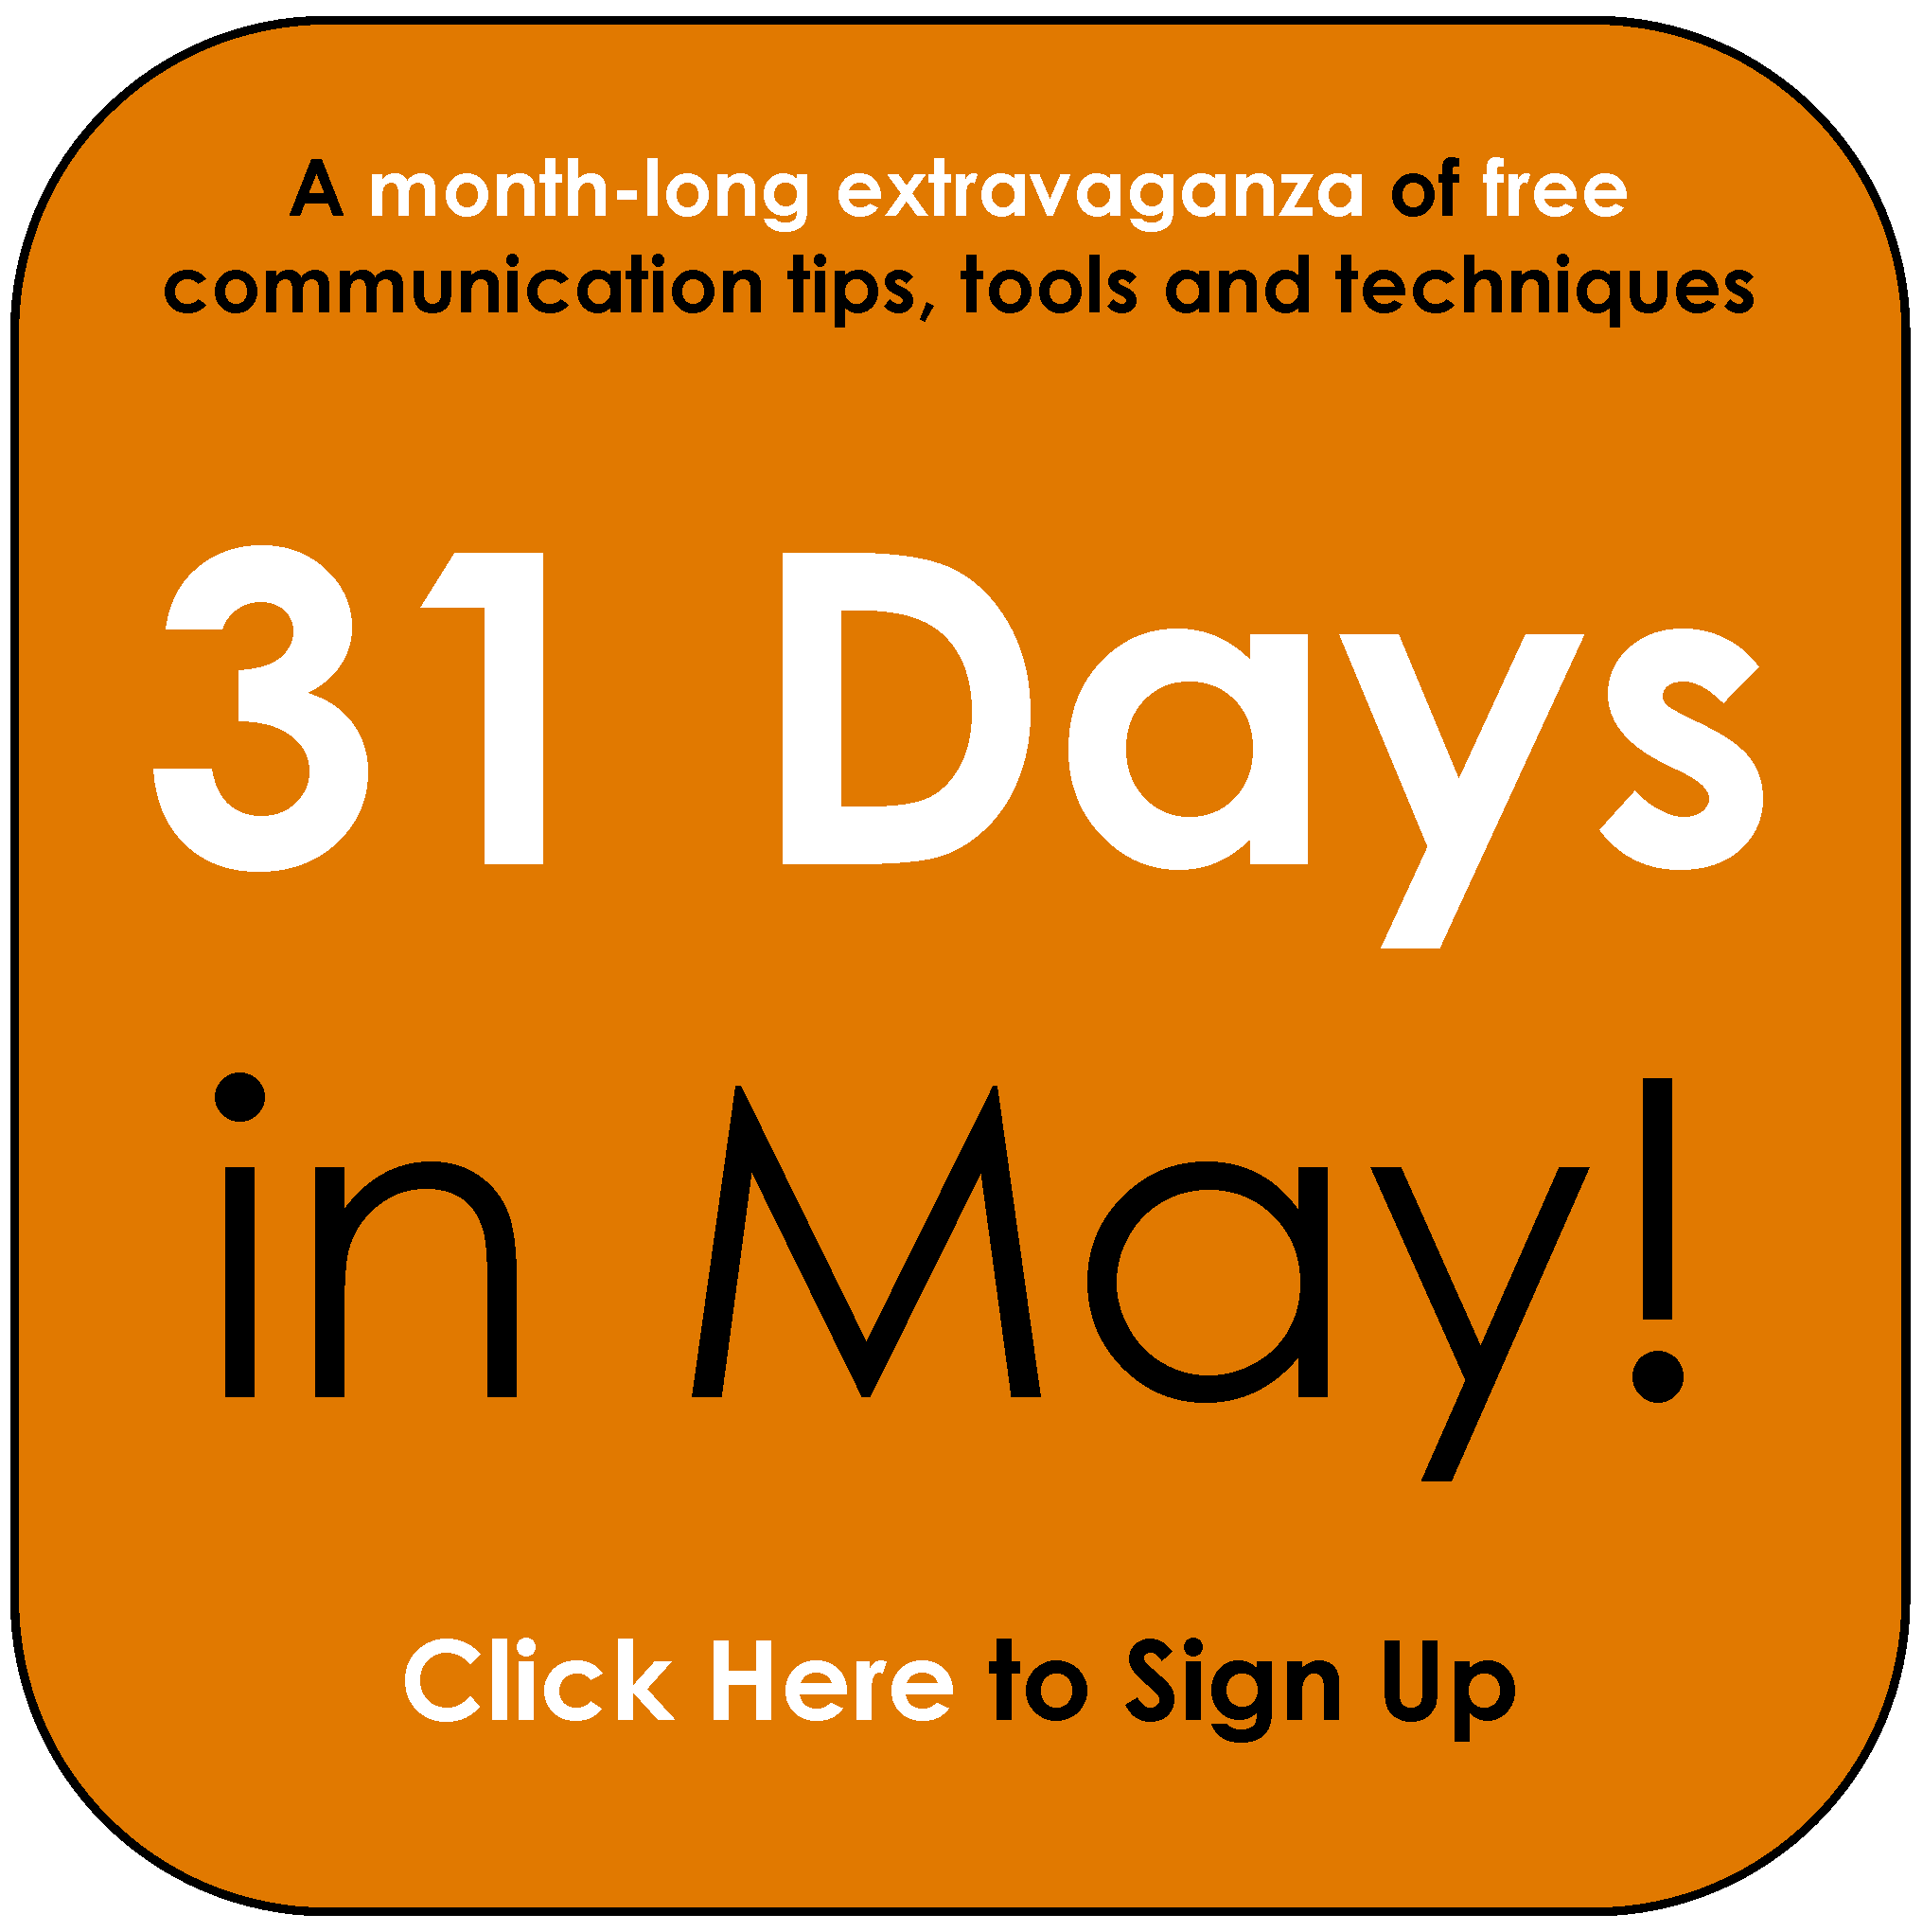 31 Days In May!